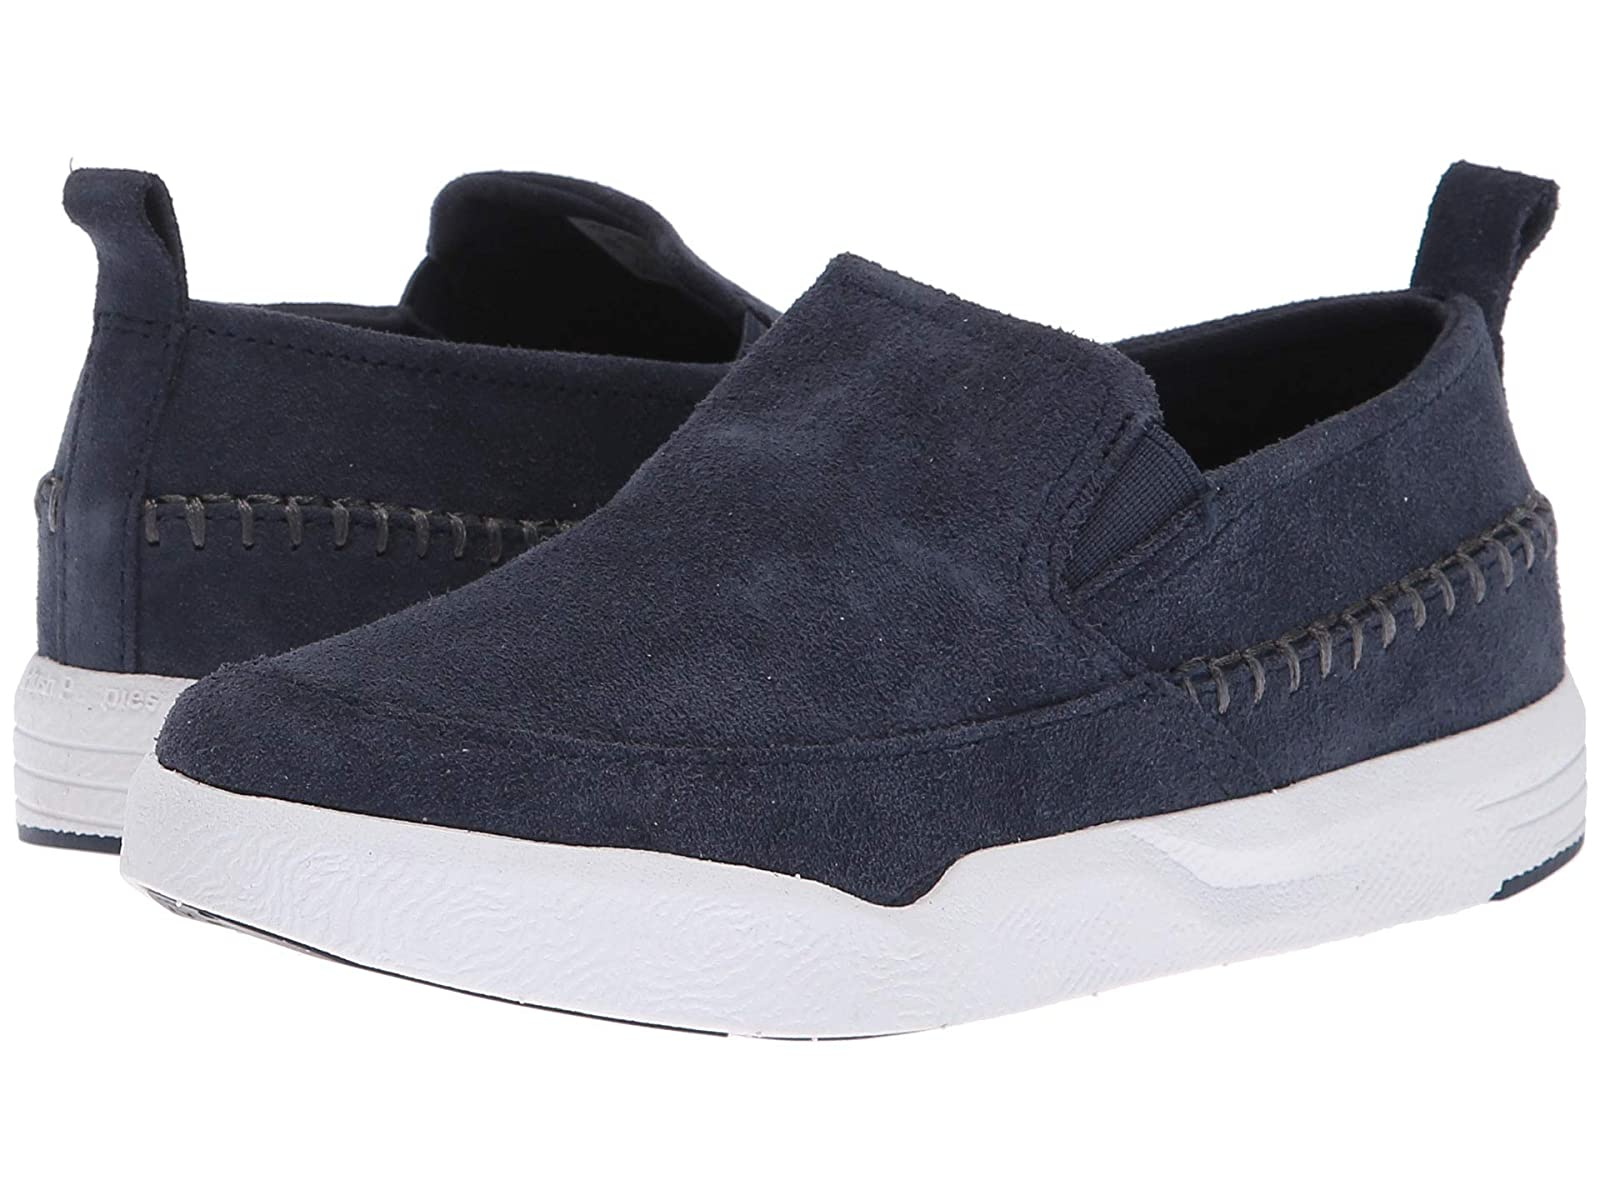 Hush Puppies Kids Lazy Genius (Little Kid/Big Kid)Atmospheric grades have affordable shoes